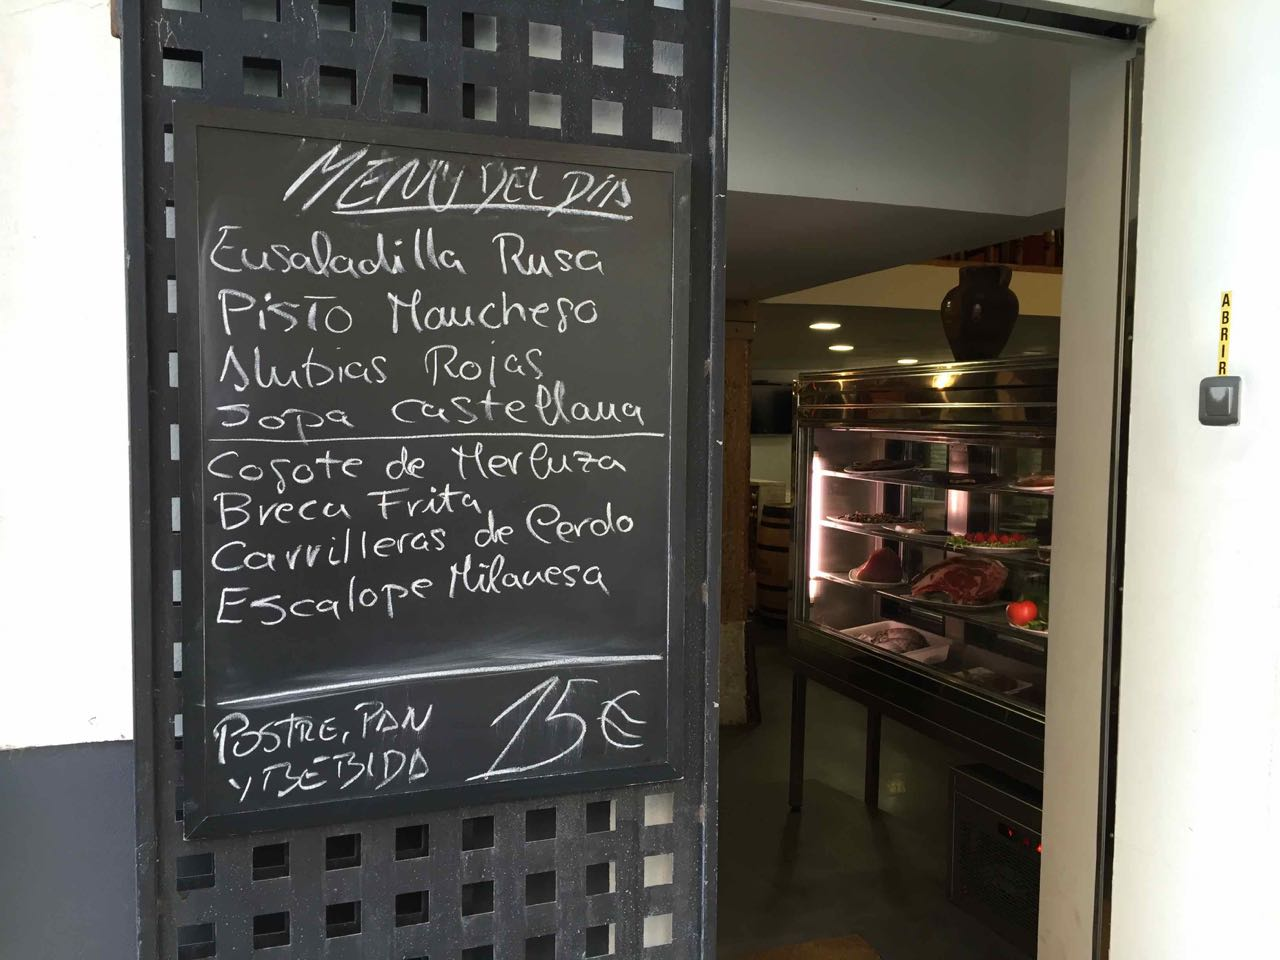 set-price meals in Spain